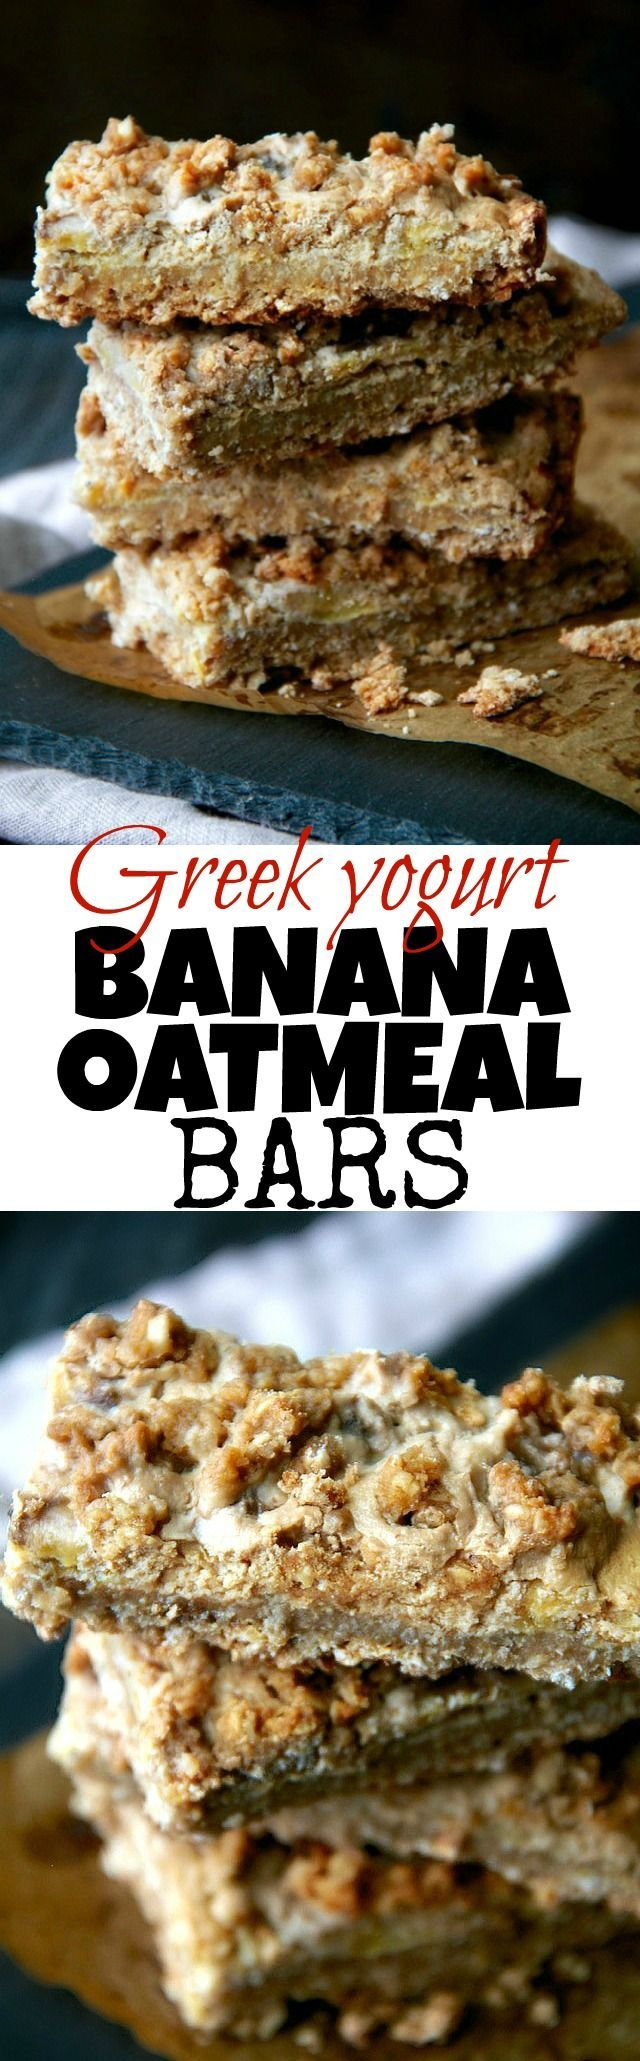 These soft-baked Greek Yogurt Banana Oatmeal Bars are gluten-free, refined-sugar-free, and made without any flour, butter or oil! A deliciously healthy breakfast or snack bar! | runningwithspoons.com #recipe #glutenfree #flourless